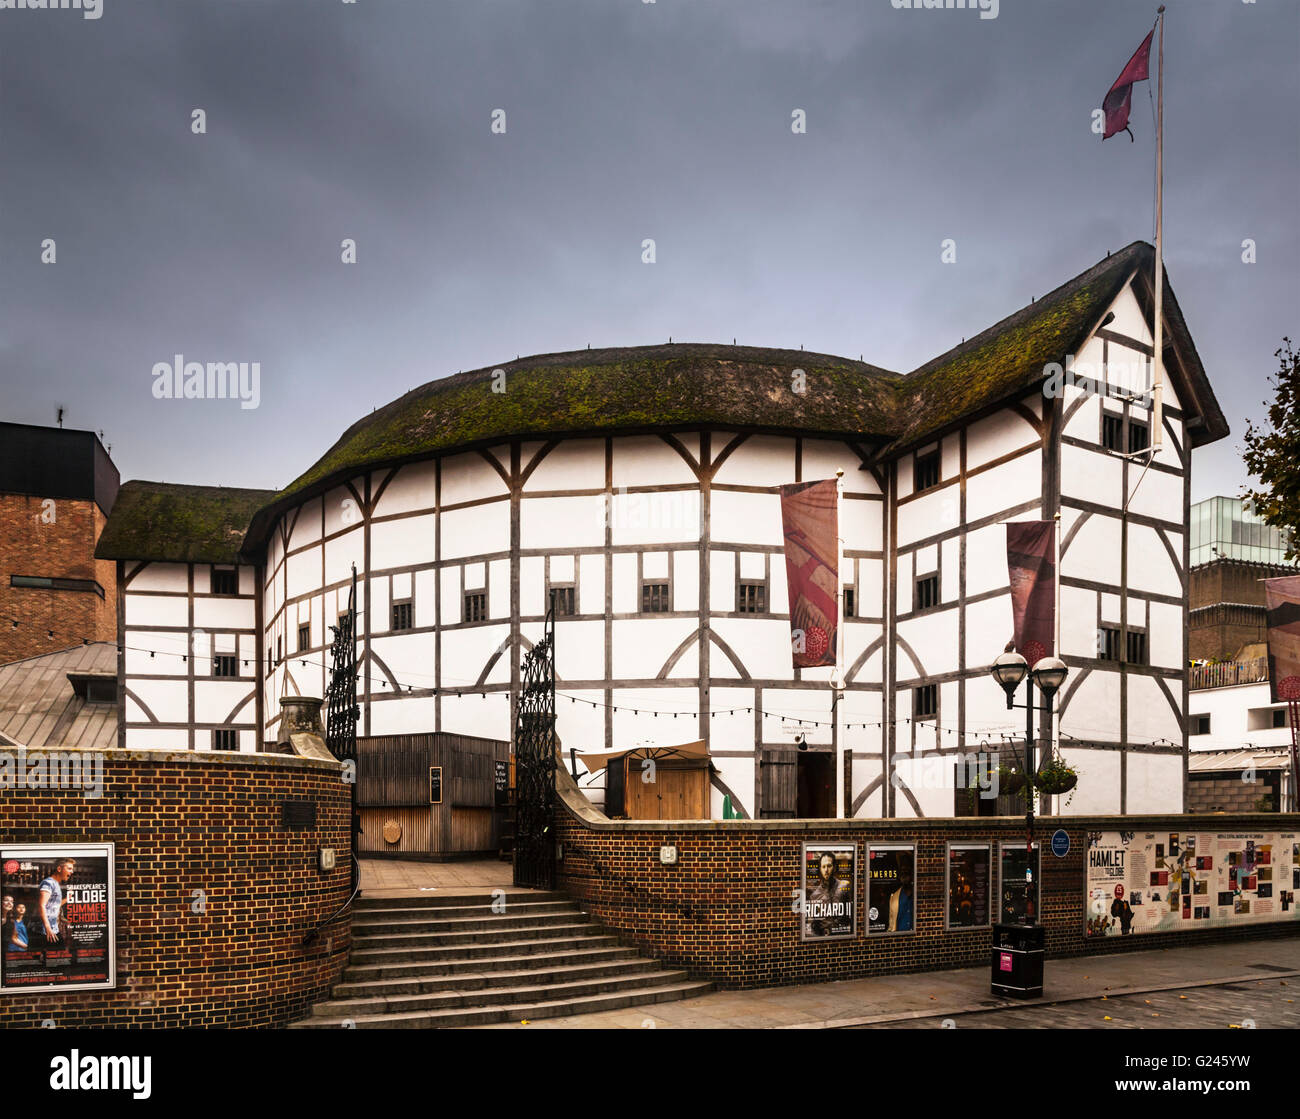 Shakespeare's Globe, a reconstruction of the Globe Theatre, Southwark, London, England. - Stock Image